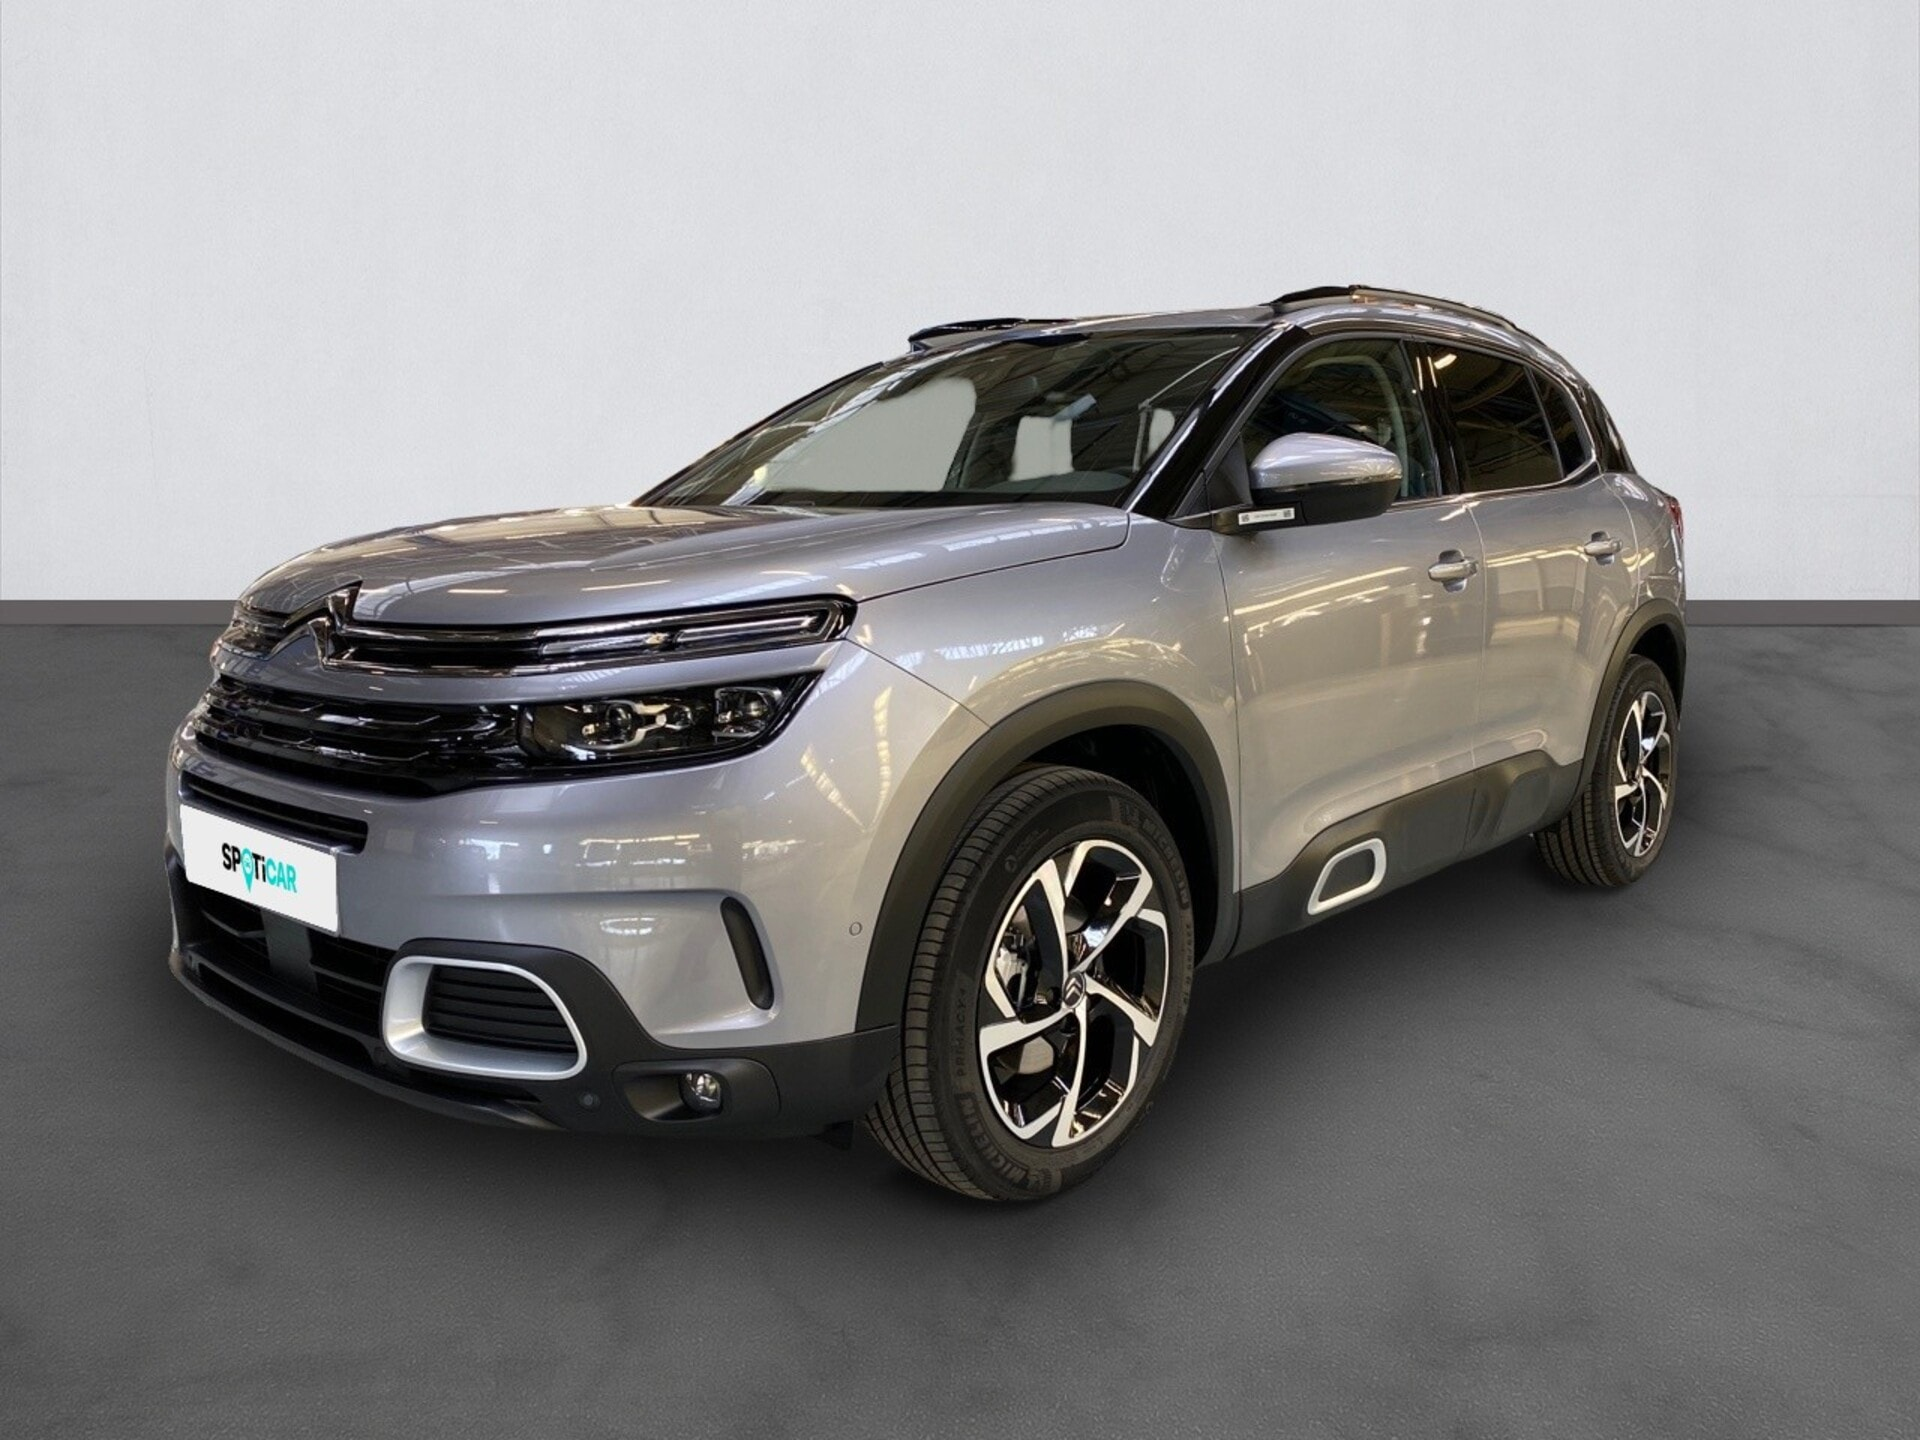 CITROEN C5 AIRCROSS BLUEHDI 130 S&S EAT8 SHINE - Carventura